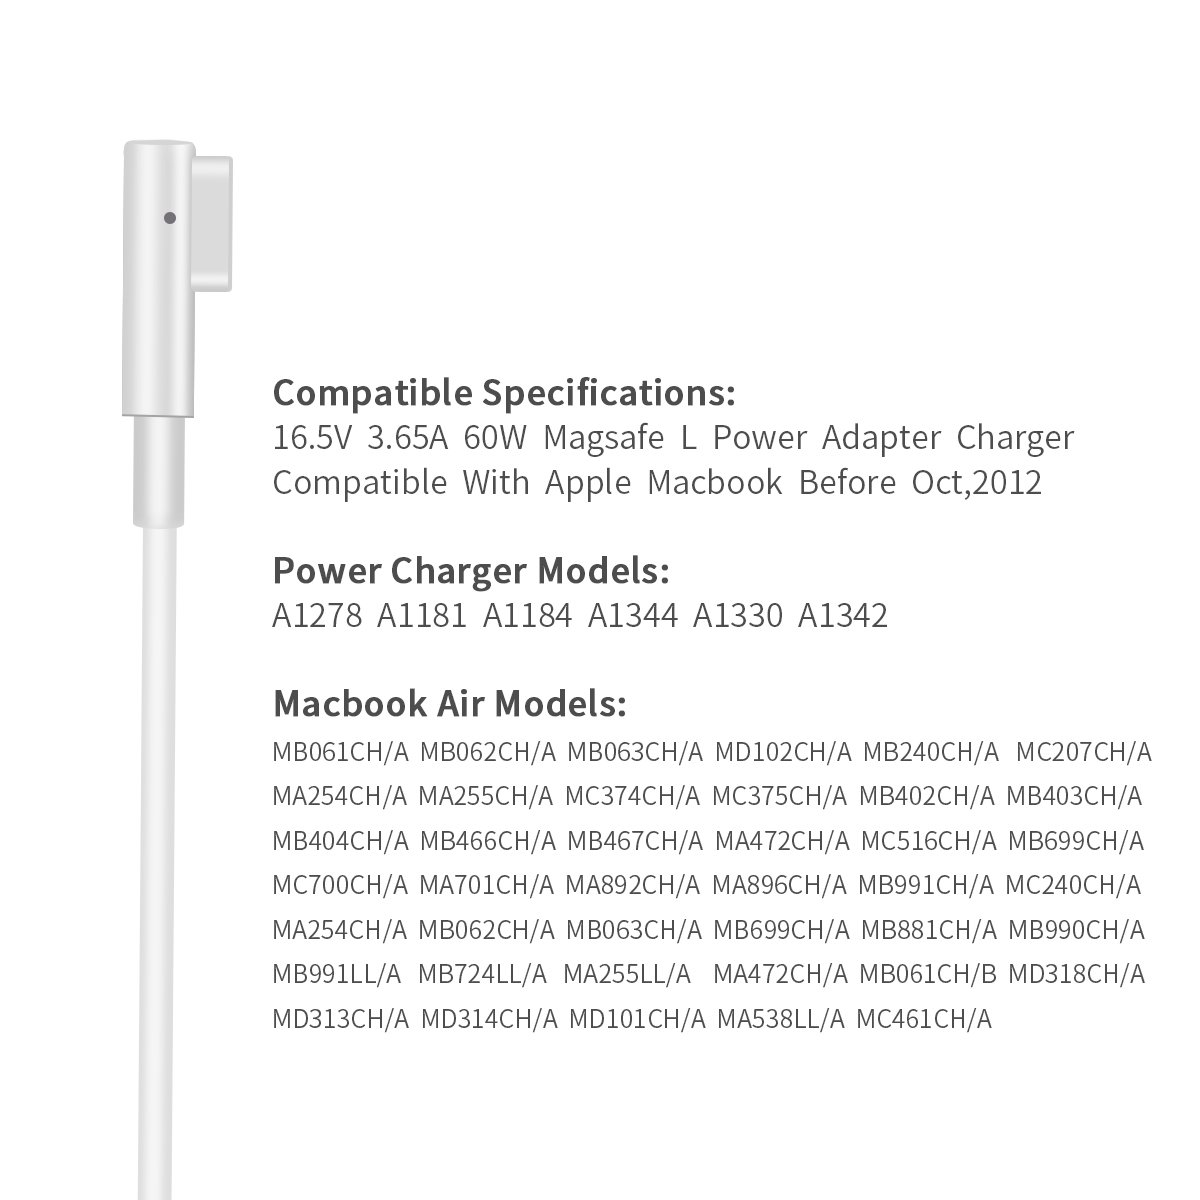 Macbook Pro Charger, AC 60W Magsafe L-Tip Power Adapter Replacement Charger for Apple Macbook Pro 13 inch A1181 A1278 A1184 A1330 A1342 A1344 (Before Mid 2012 Models) by DDBOX (Image #4)